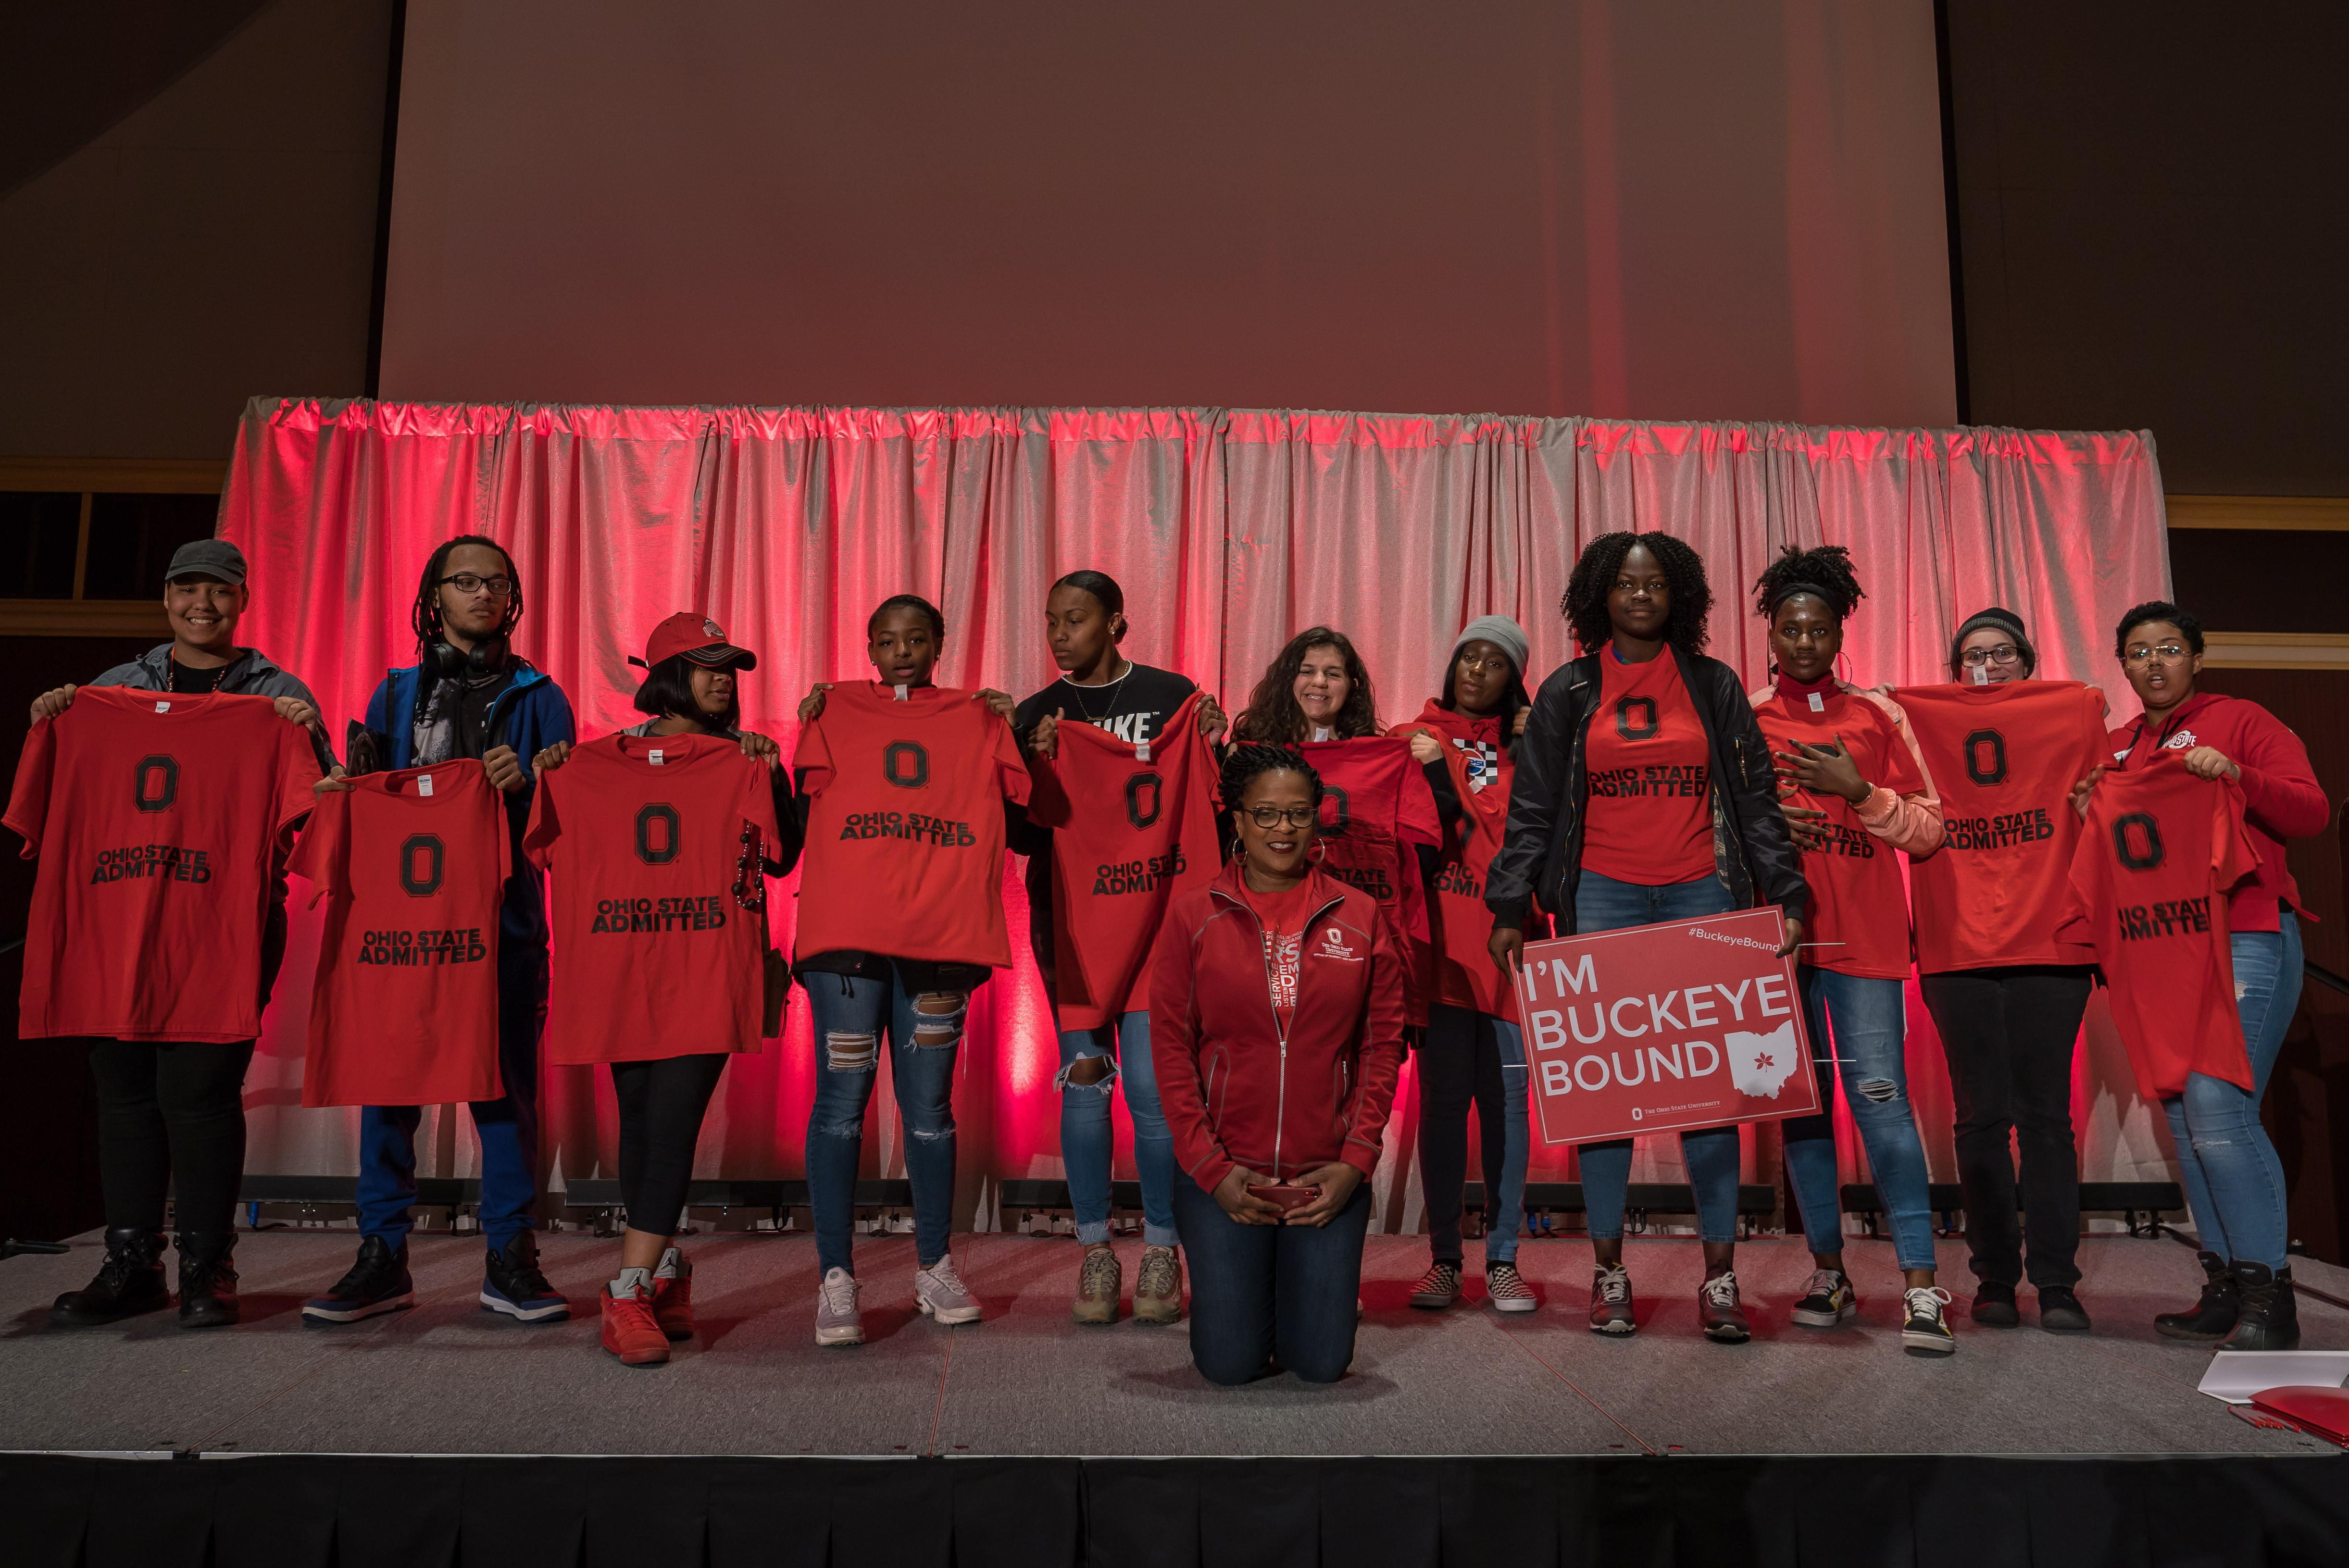 New Young Scholars standing on a stage wearing YSP t-shirts